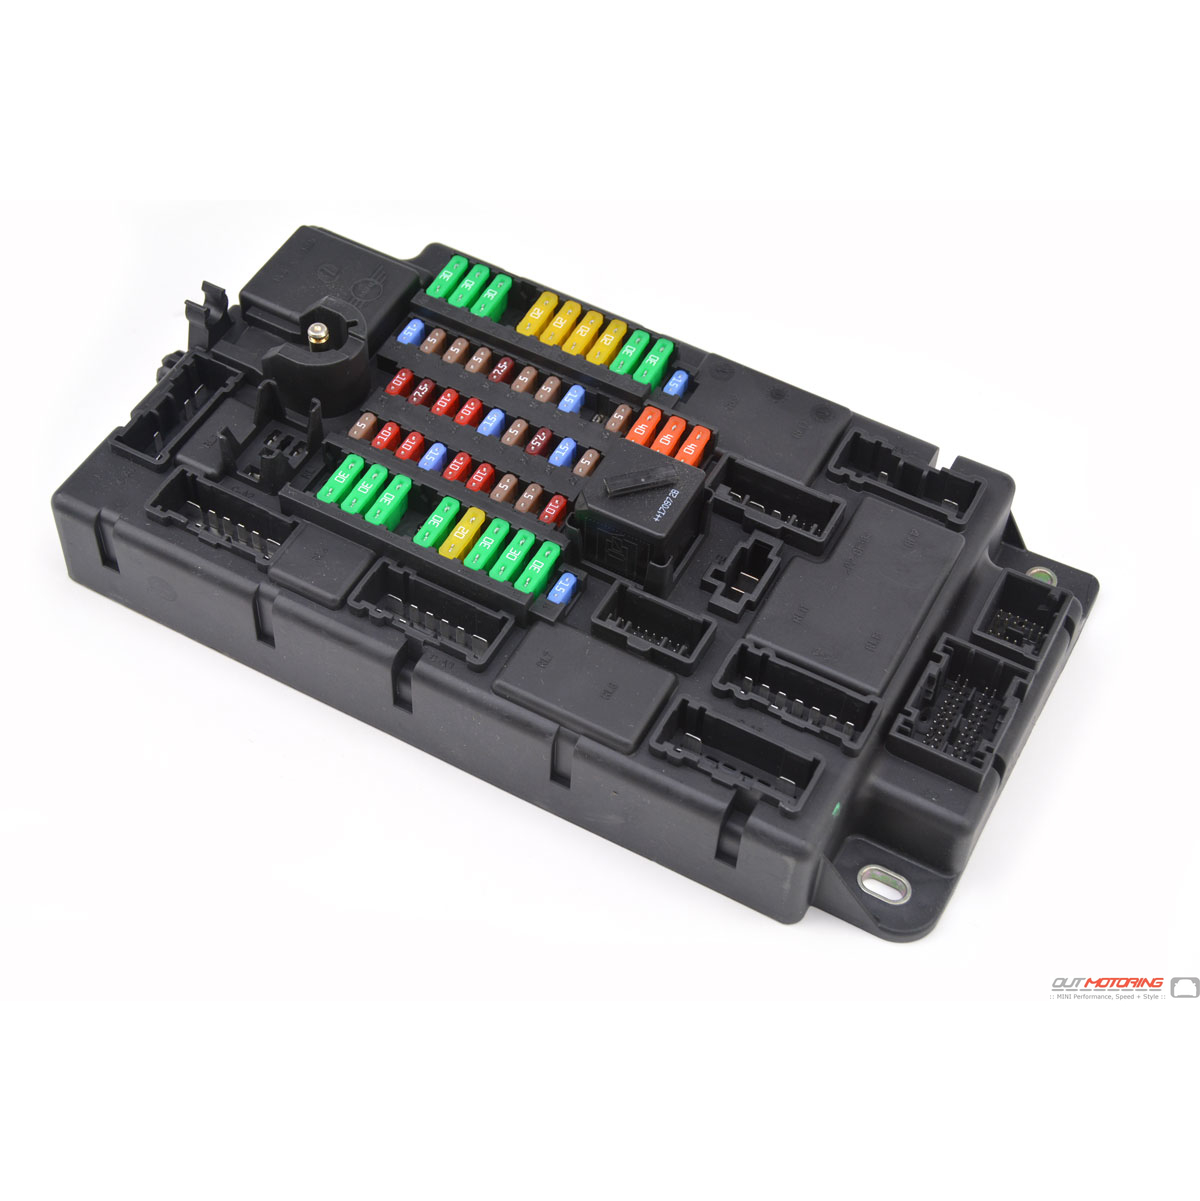 61353457582 mini cooper replacement fuse box speg high mini cooper rh outmotoring com 2013 Mini Cooper Fuse Diagram 2003 Mini Cooper Fuse Box